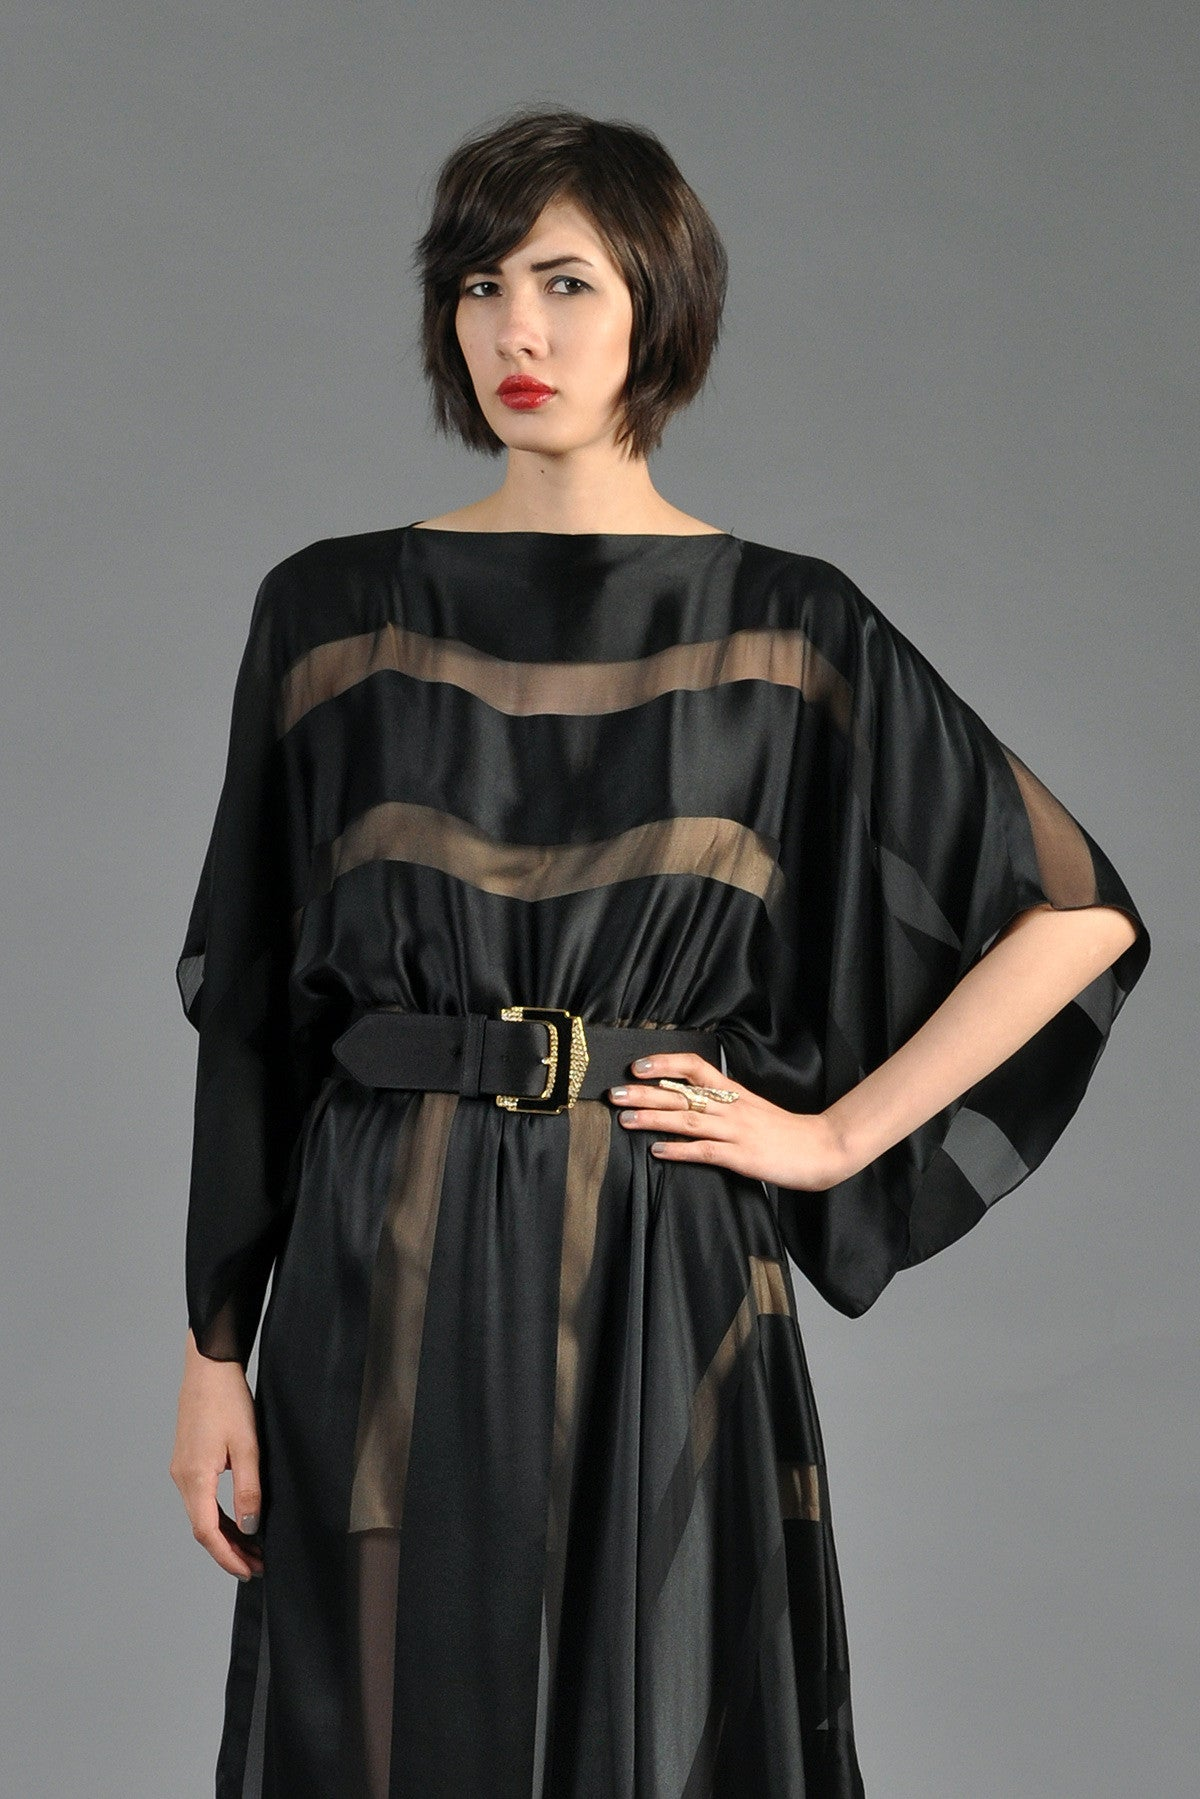 Sheer Black Silk Striped Dress with Kimono Sleeves | BUSTOWN MODERN